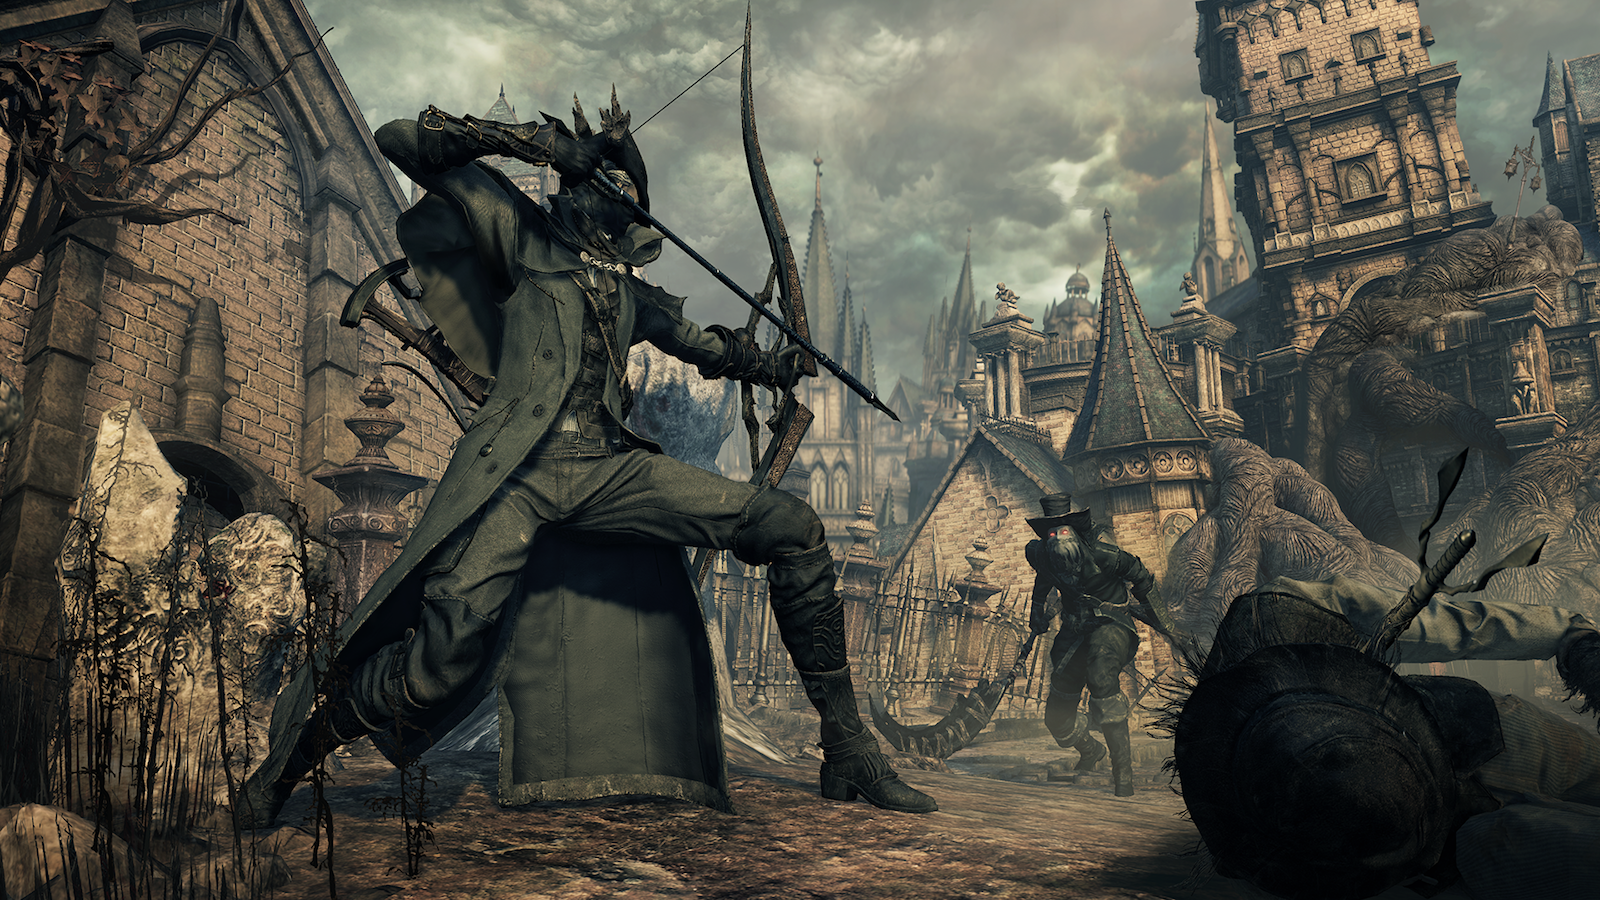 Bloodborne playstation, xbox, игры, компьютерные игры